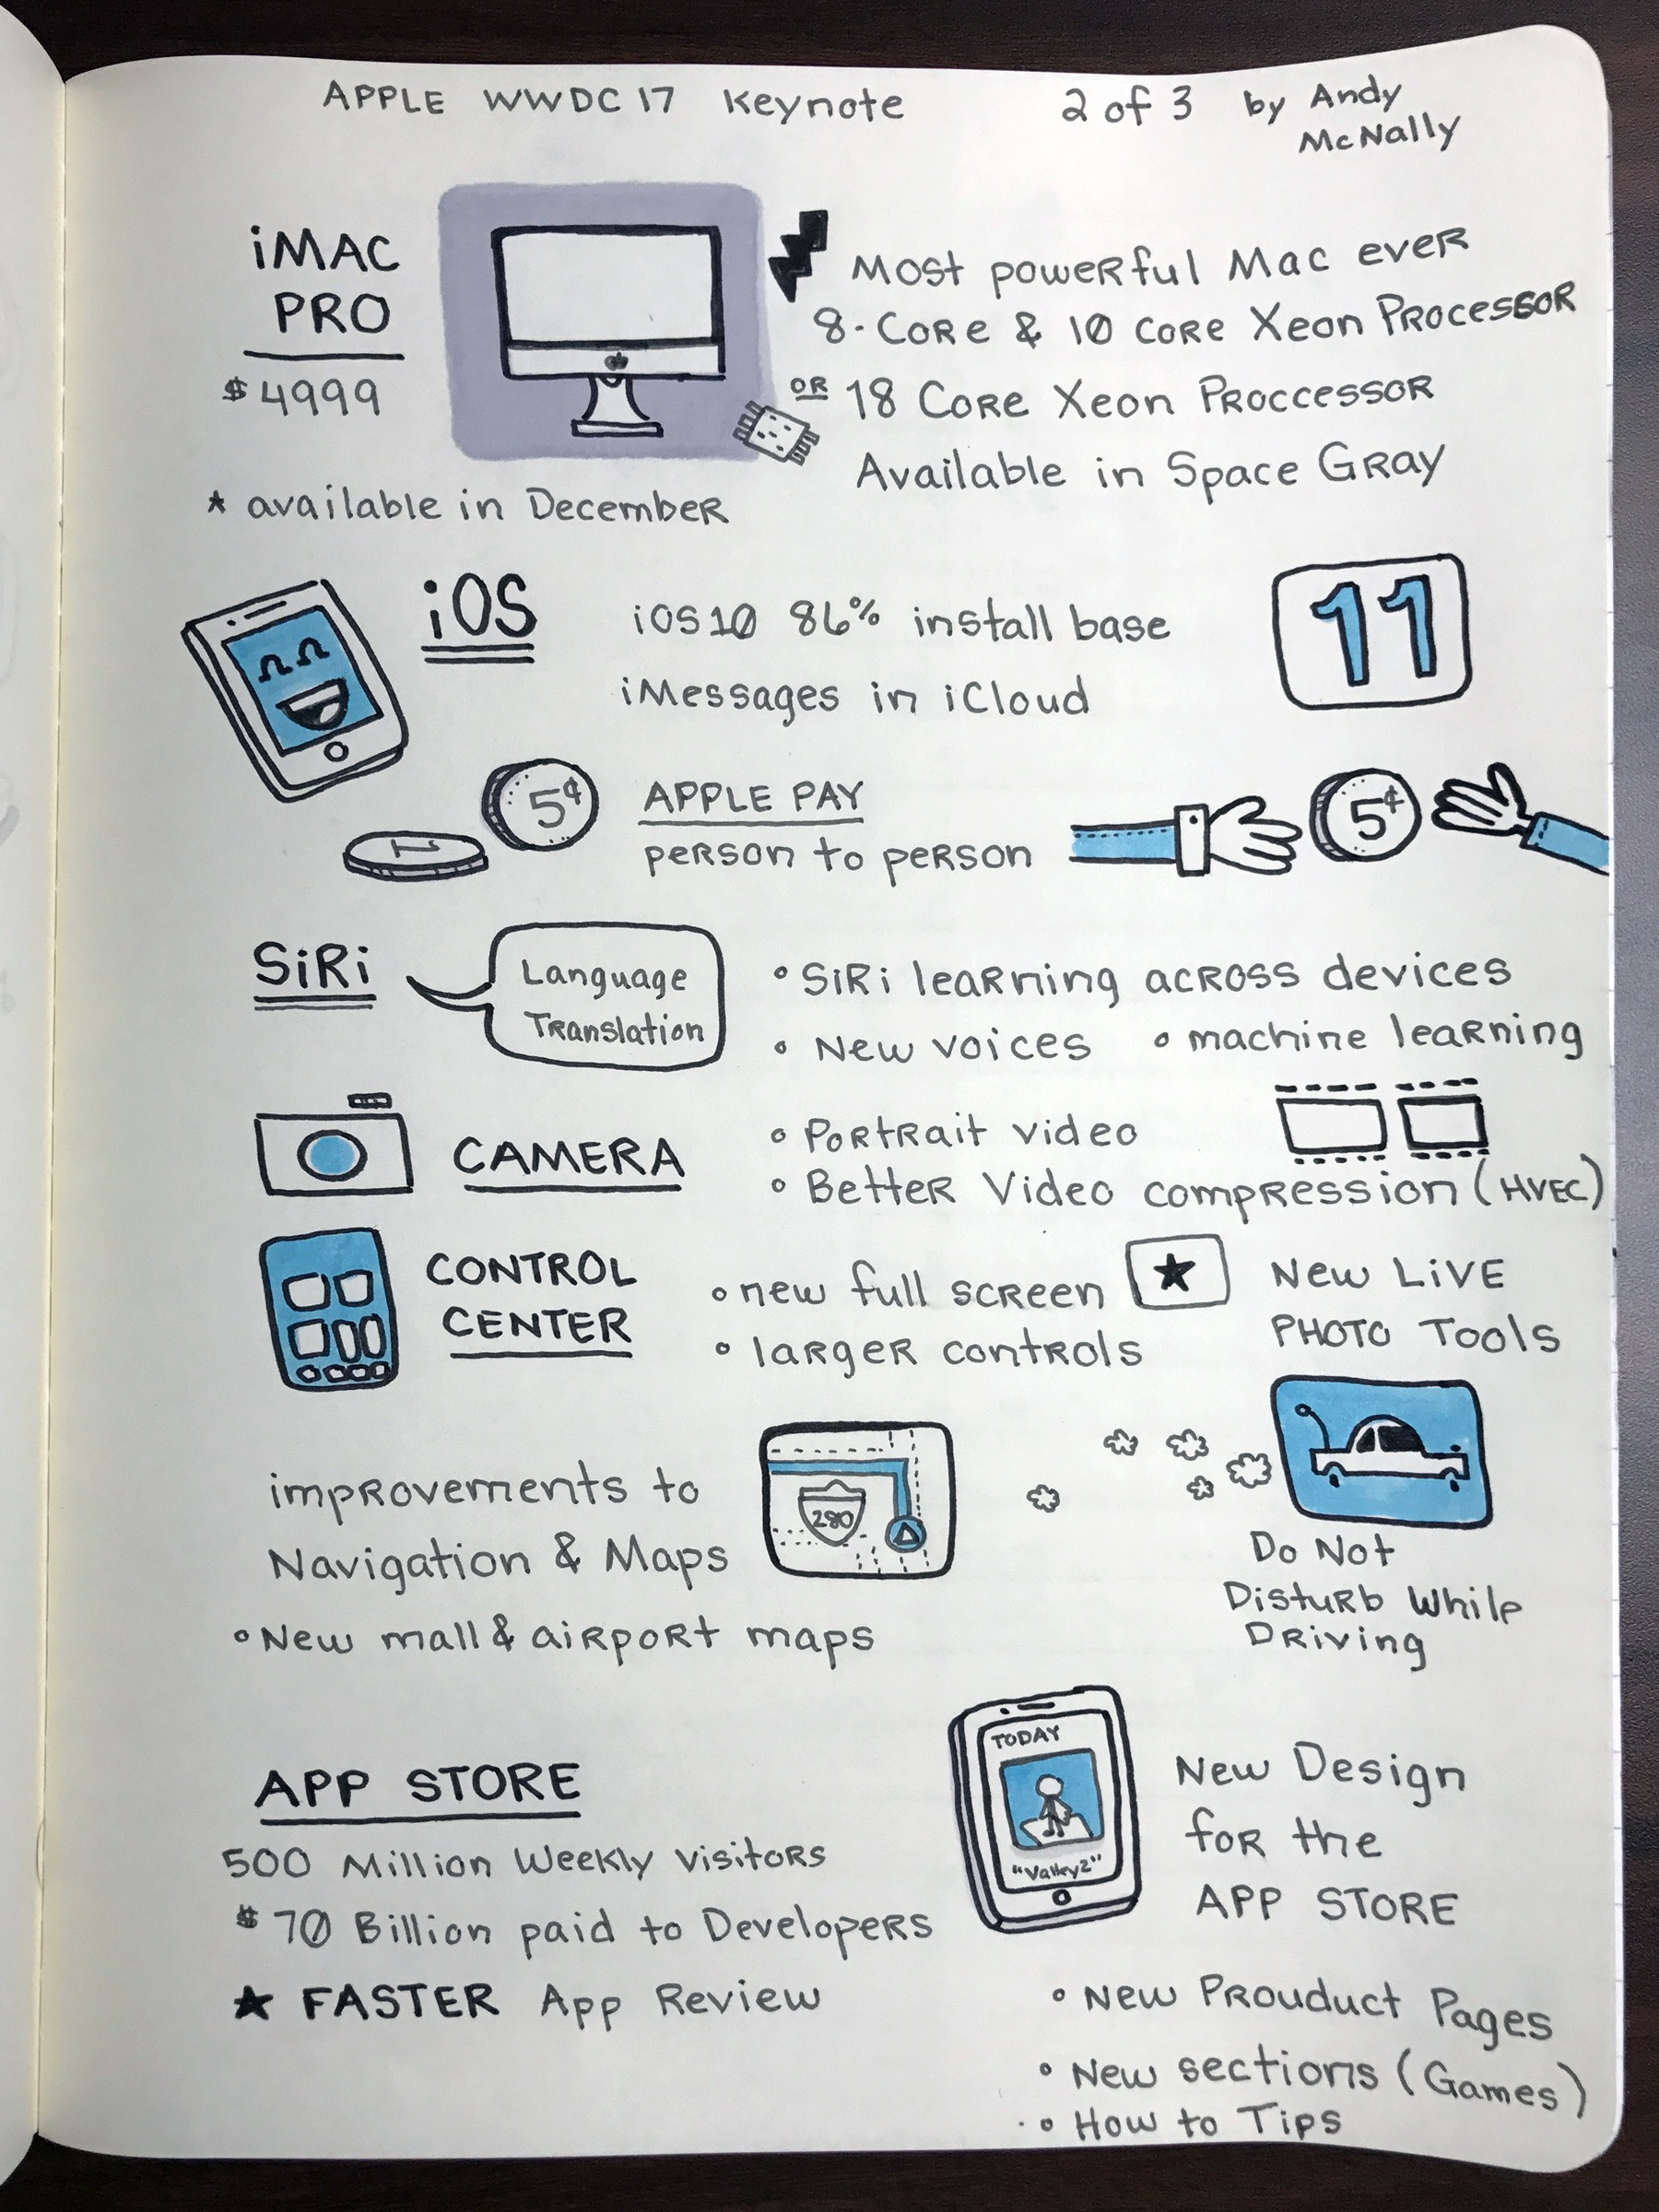 Apple WWDC Keynote Sketchnote